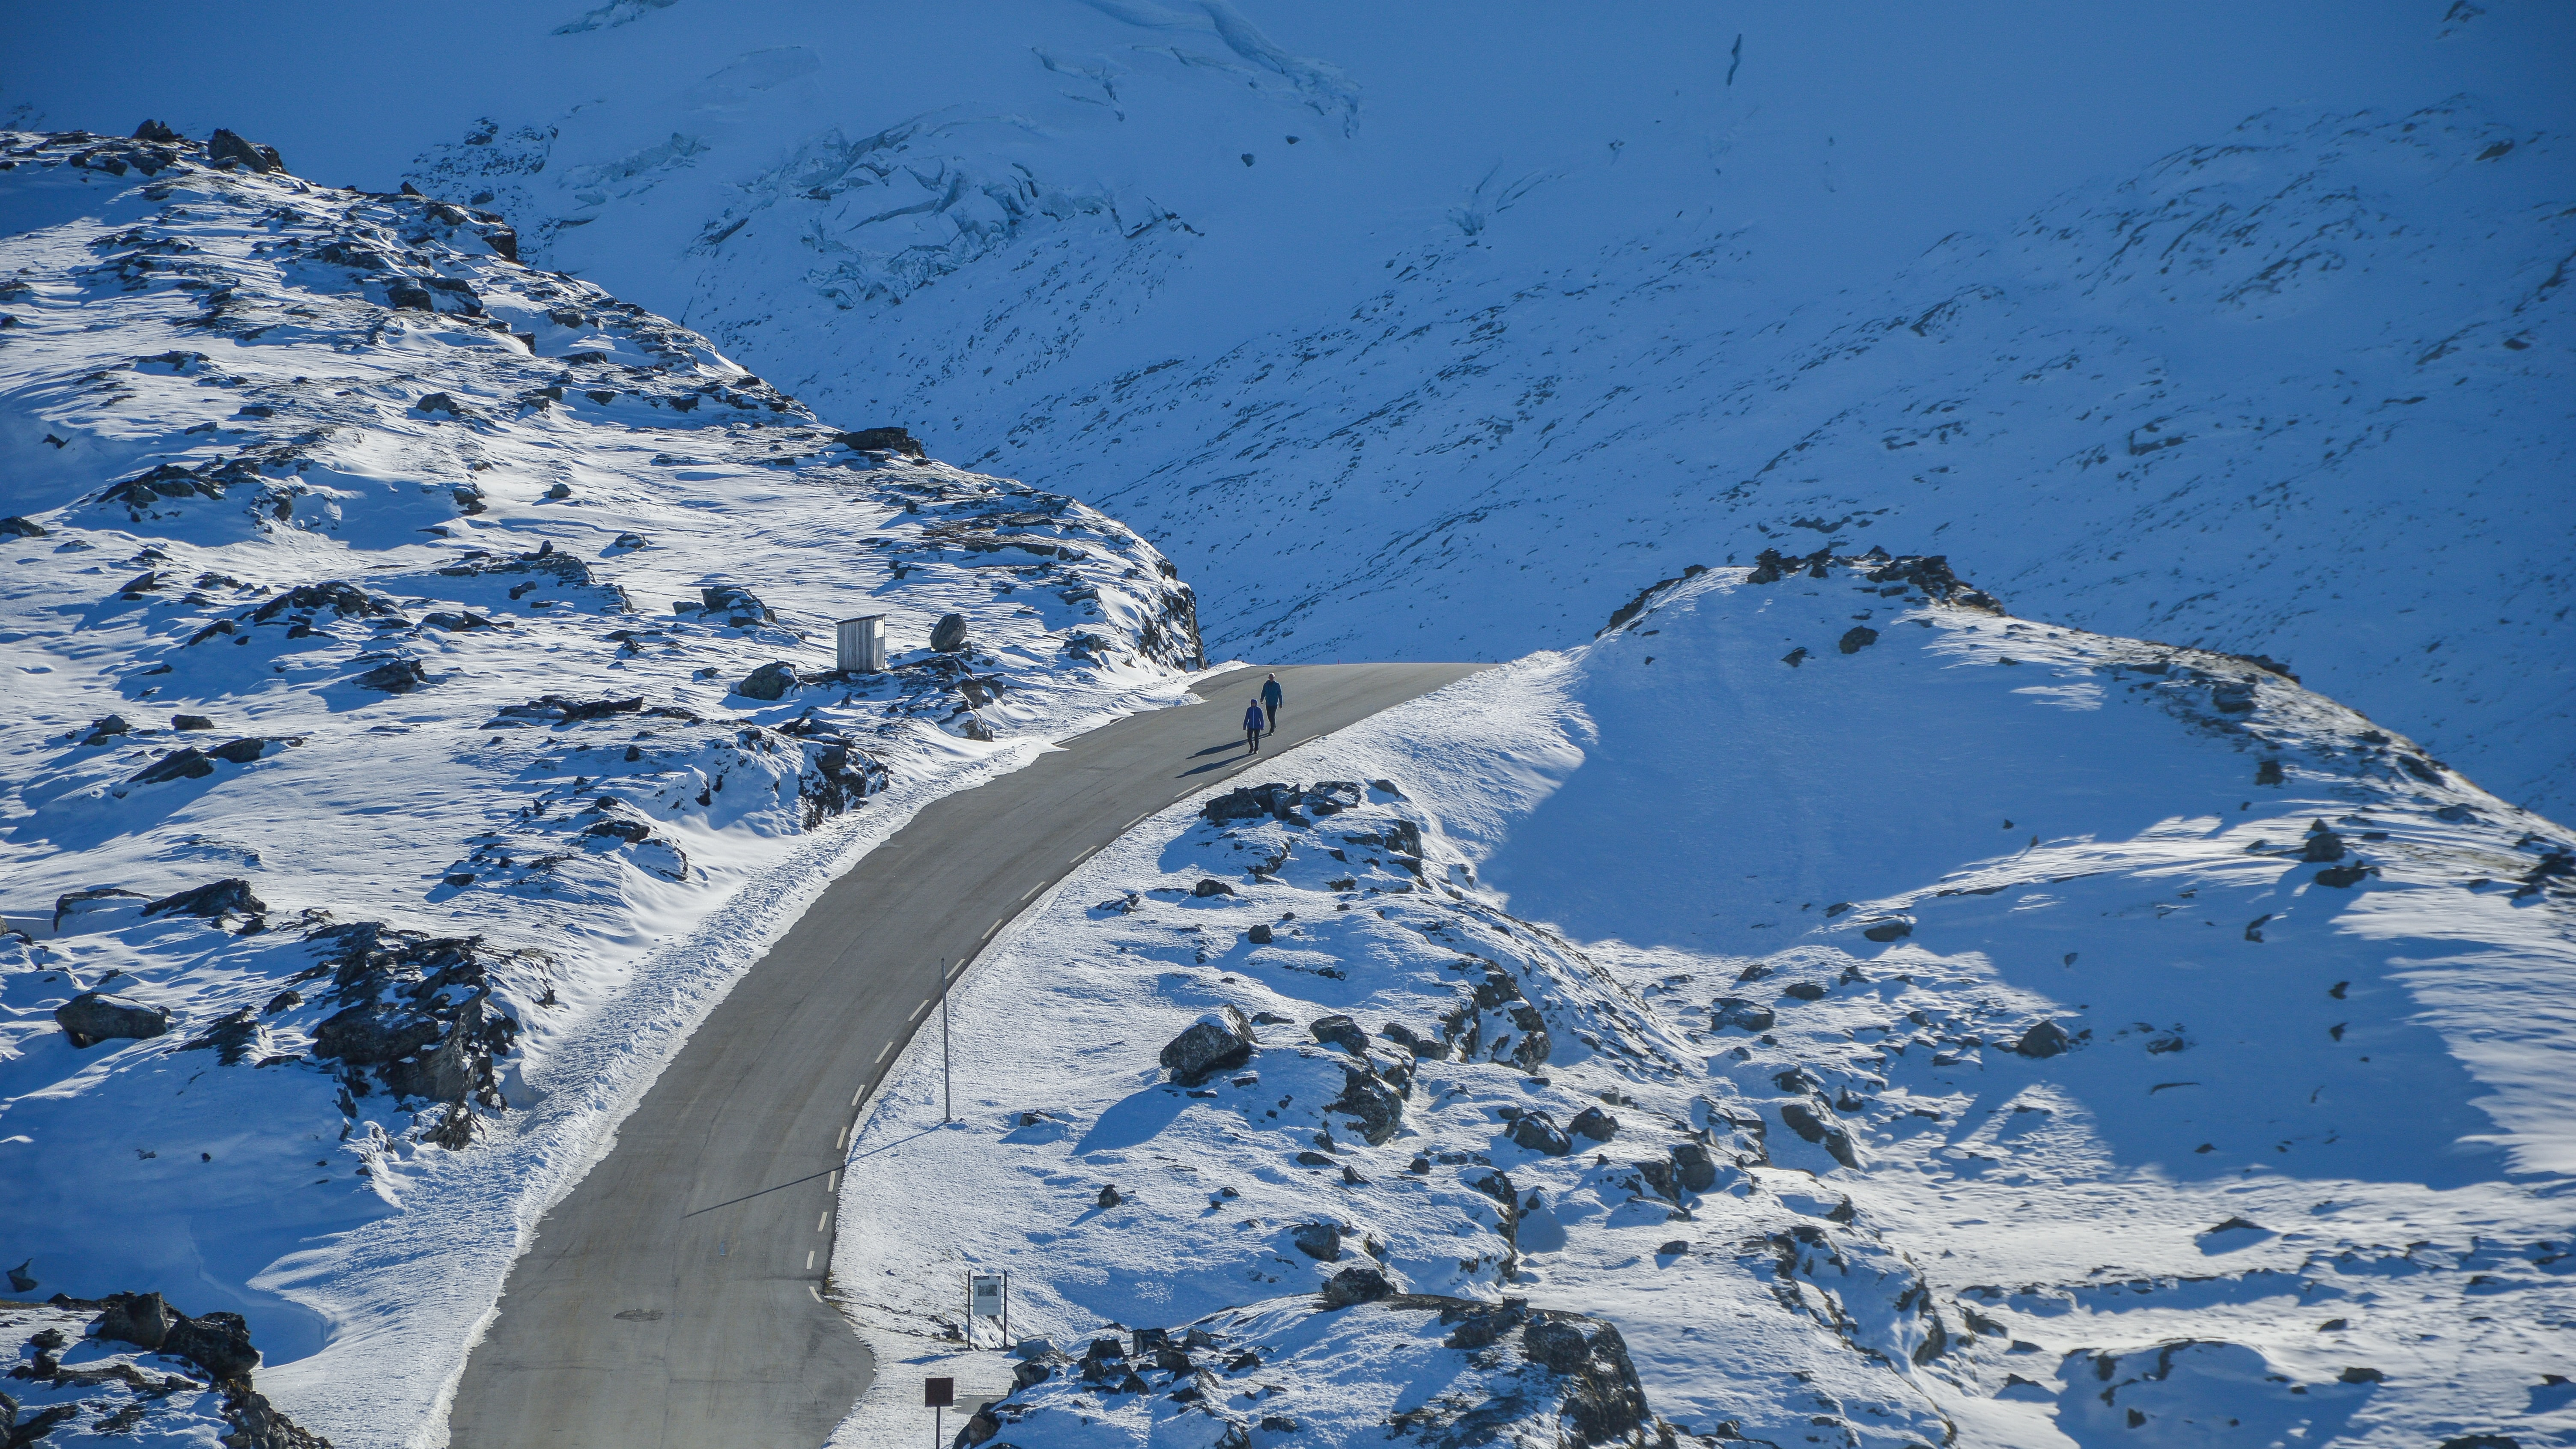 bird's eye photography of two people walking on road between snowfield